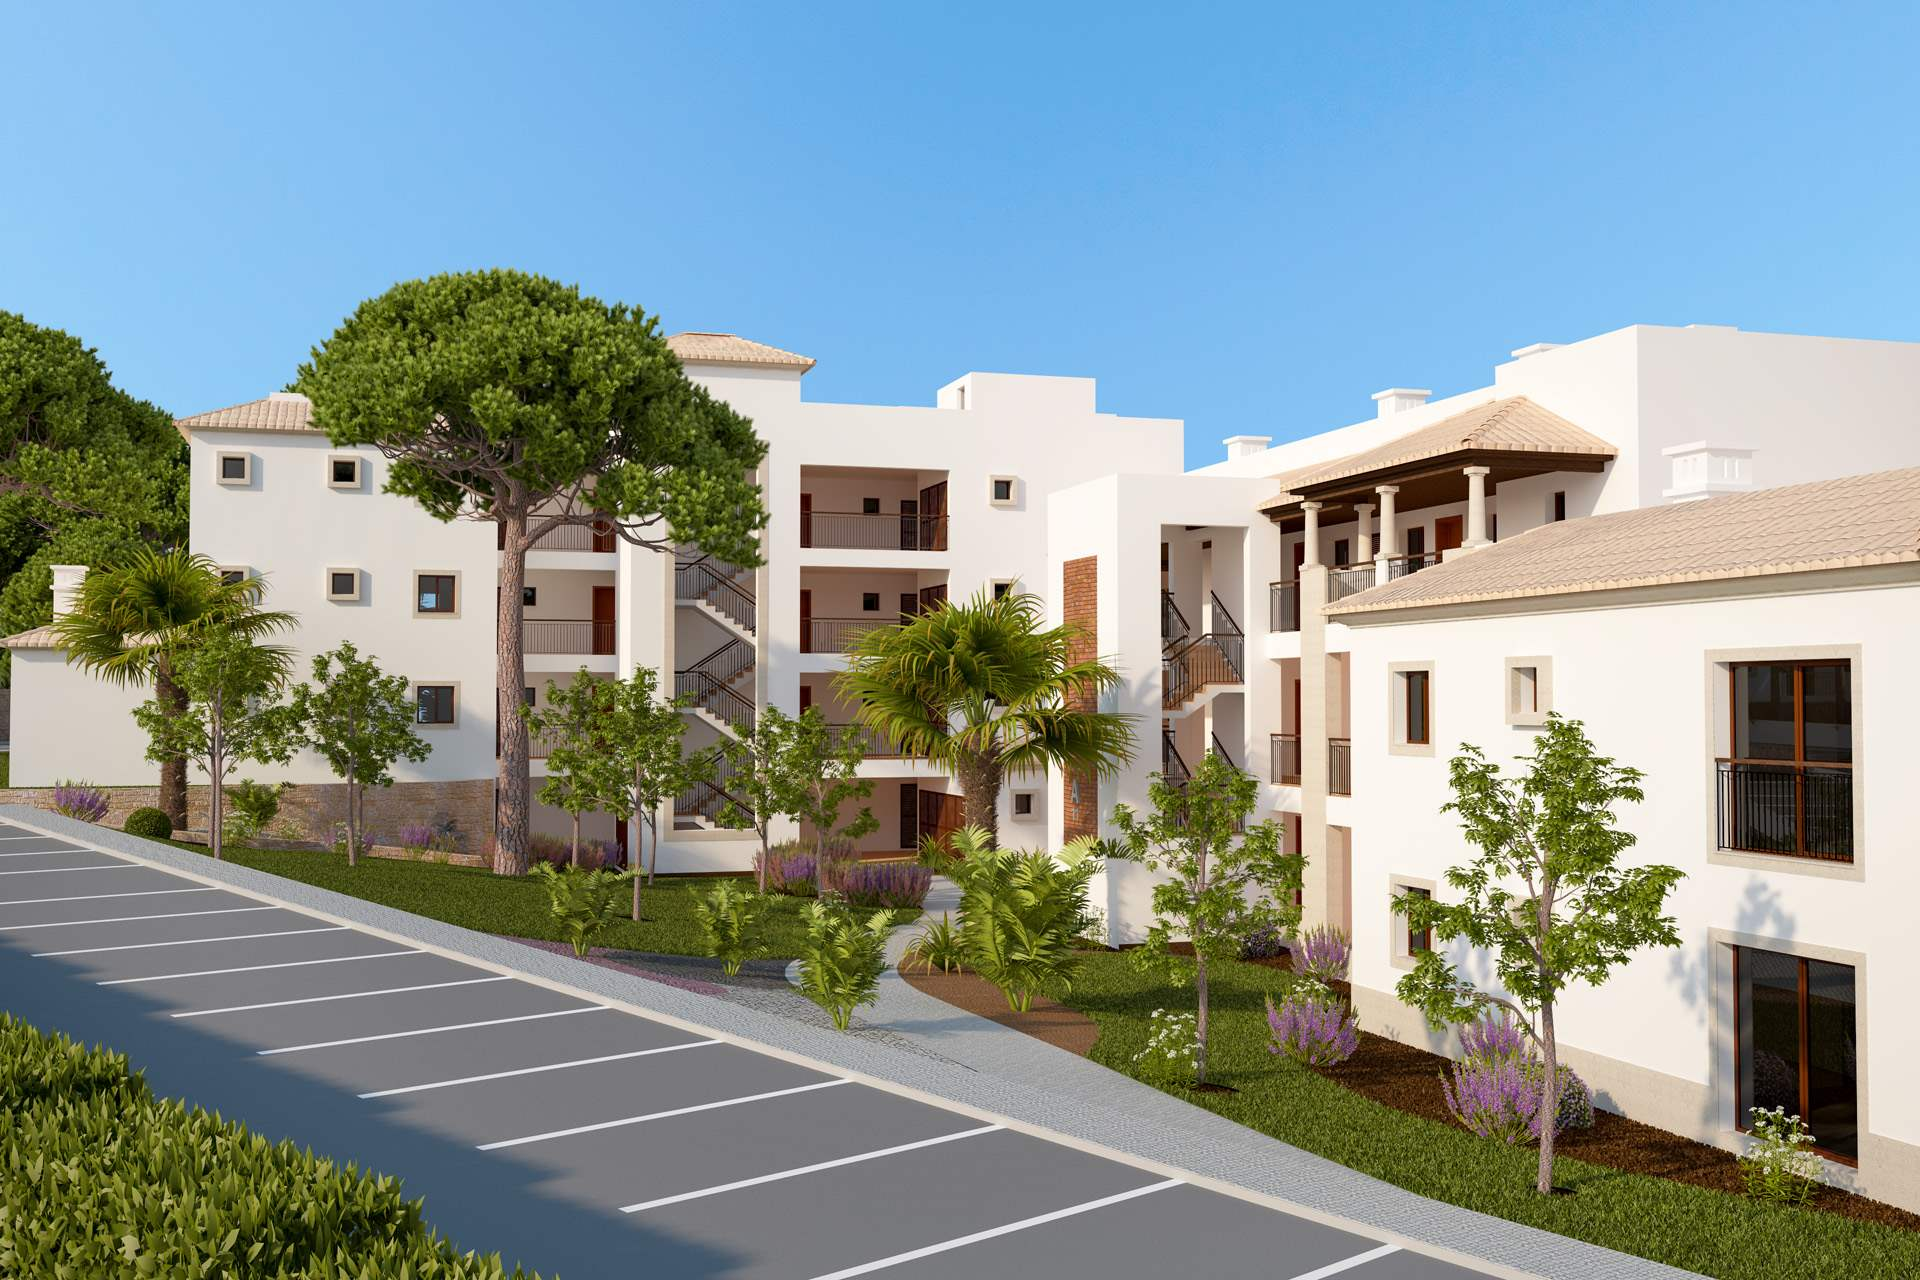 Pine Cliffs Gardens, One Bedroom Suite, S/C Basis, 1 bedroom apartment in Pine Cliffs Resort, Algarve Photo #15